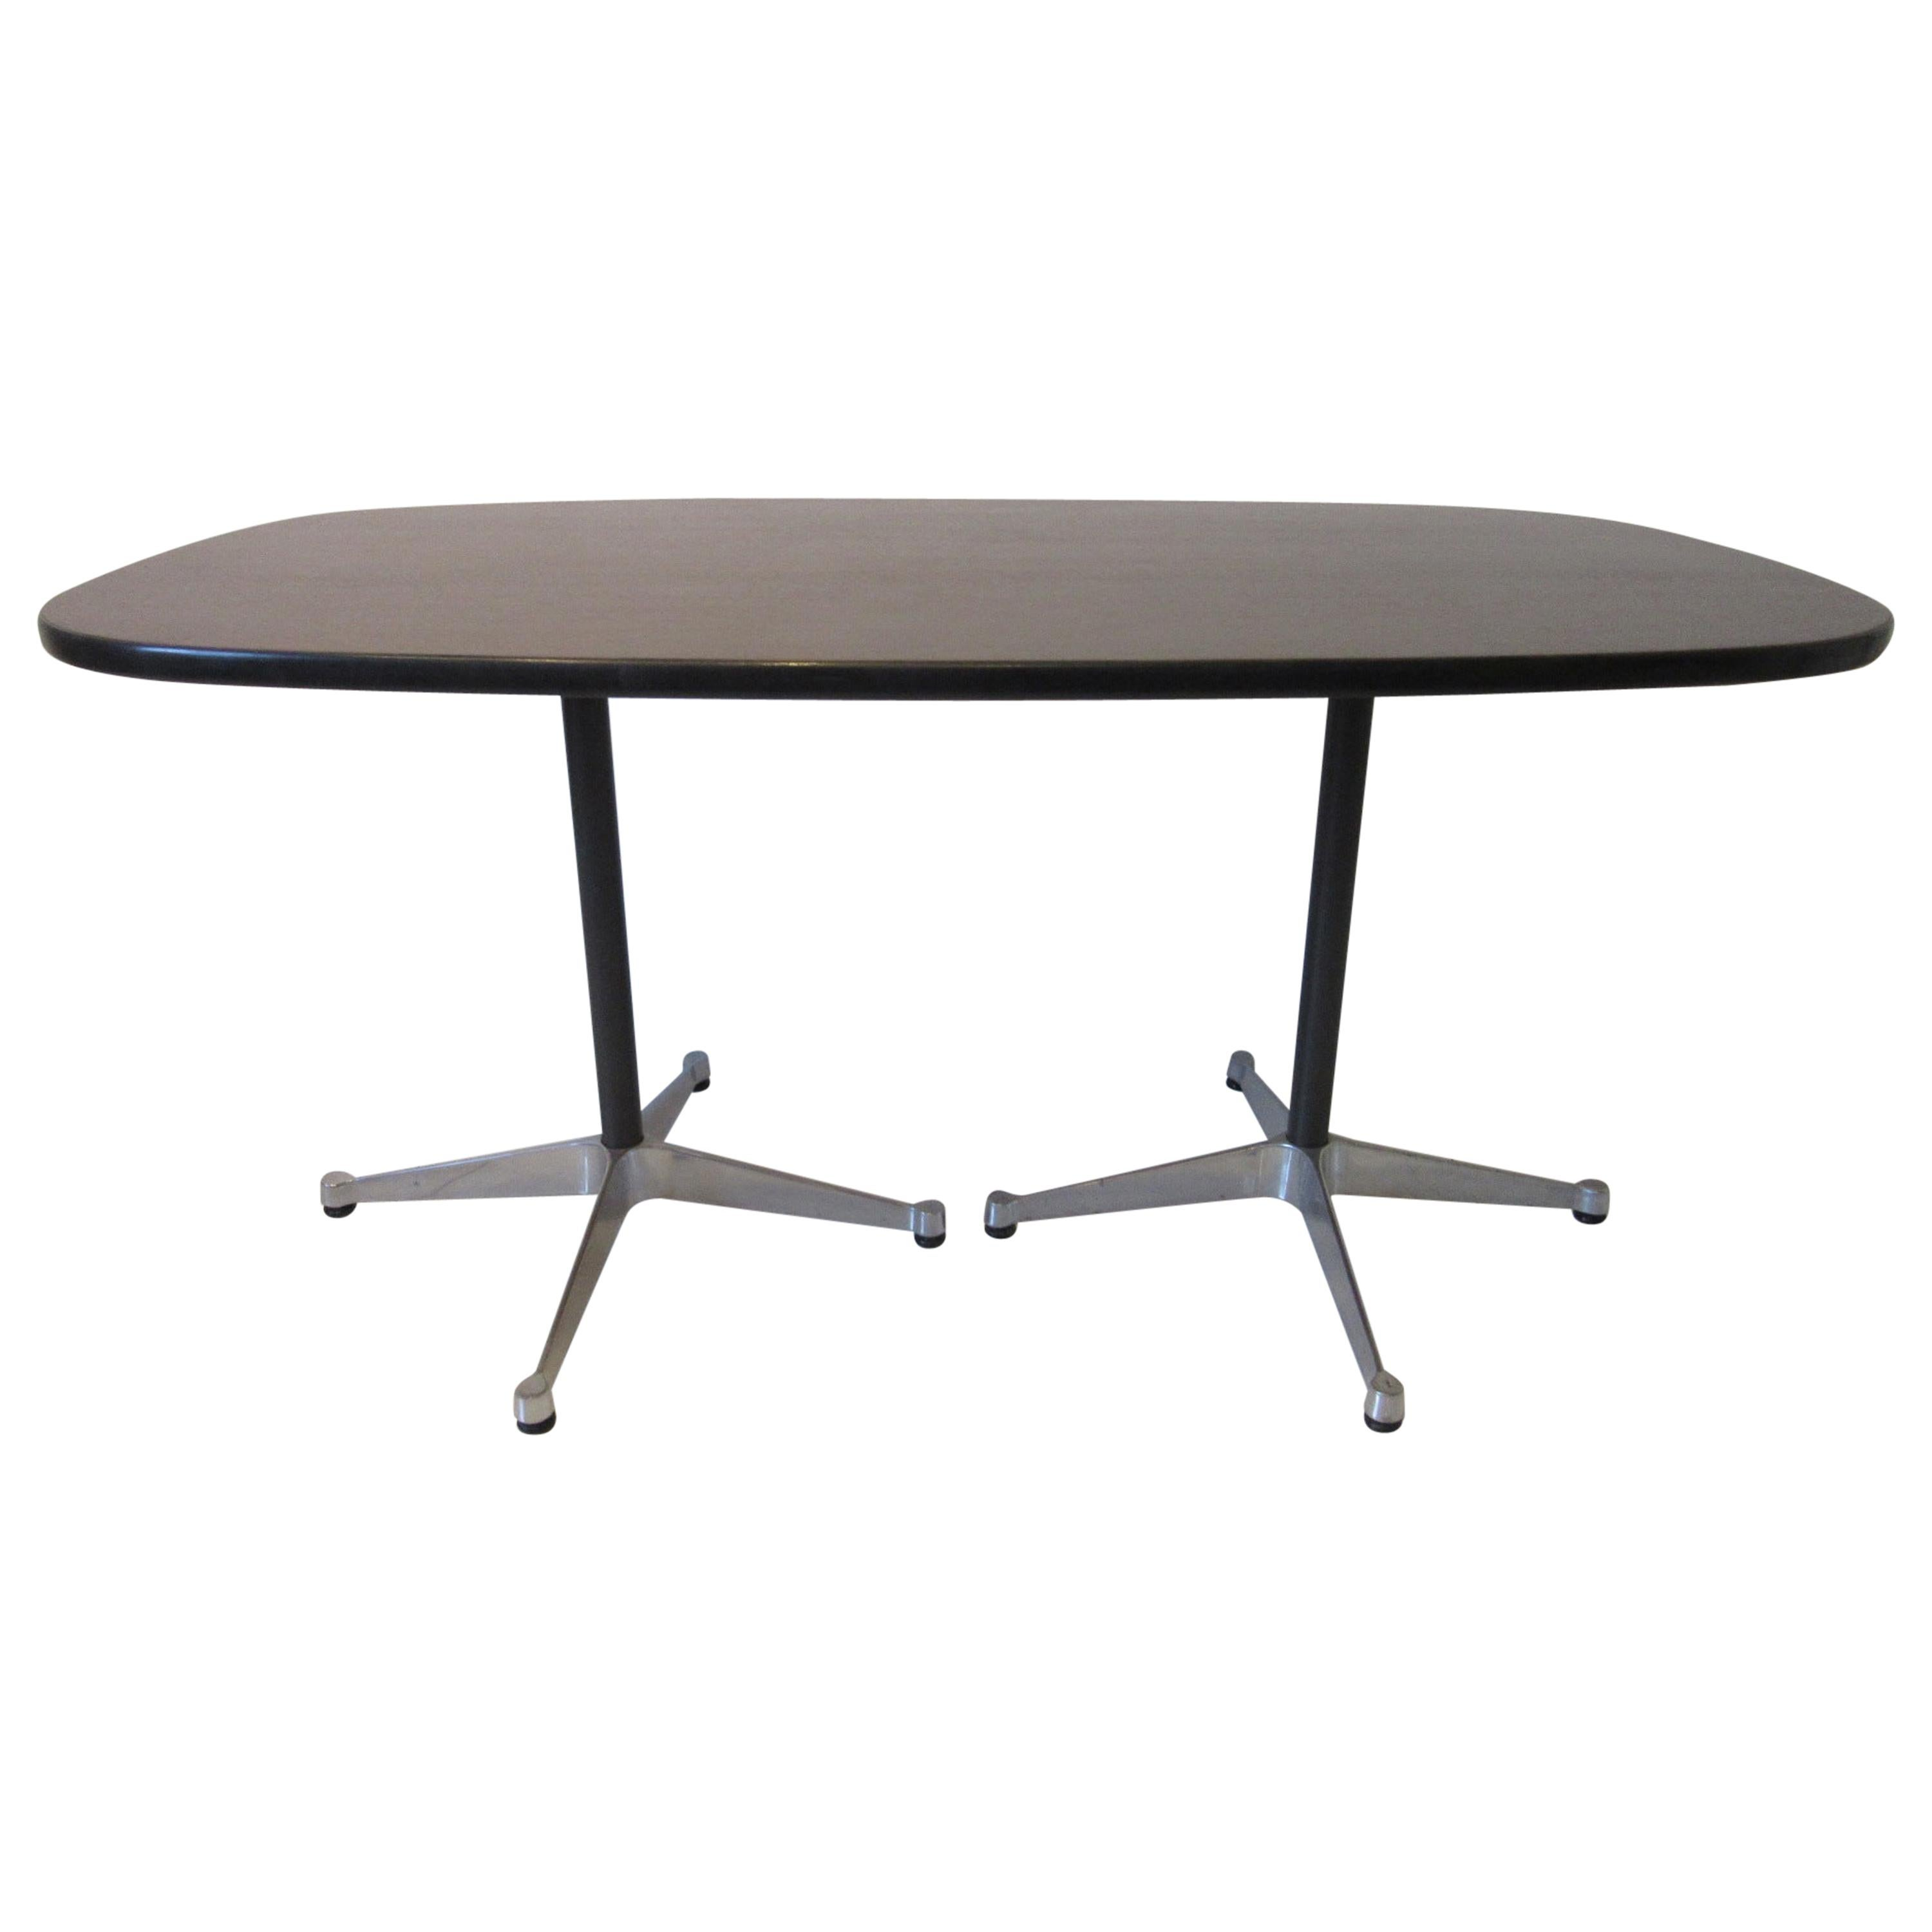 Eames Aluminum Group Dining Table for Herman Miller